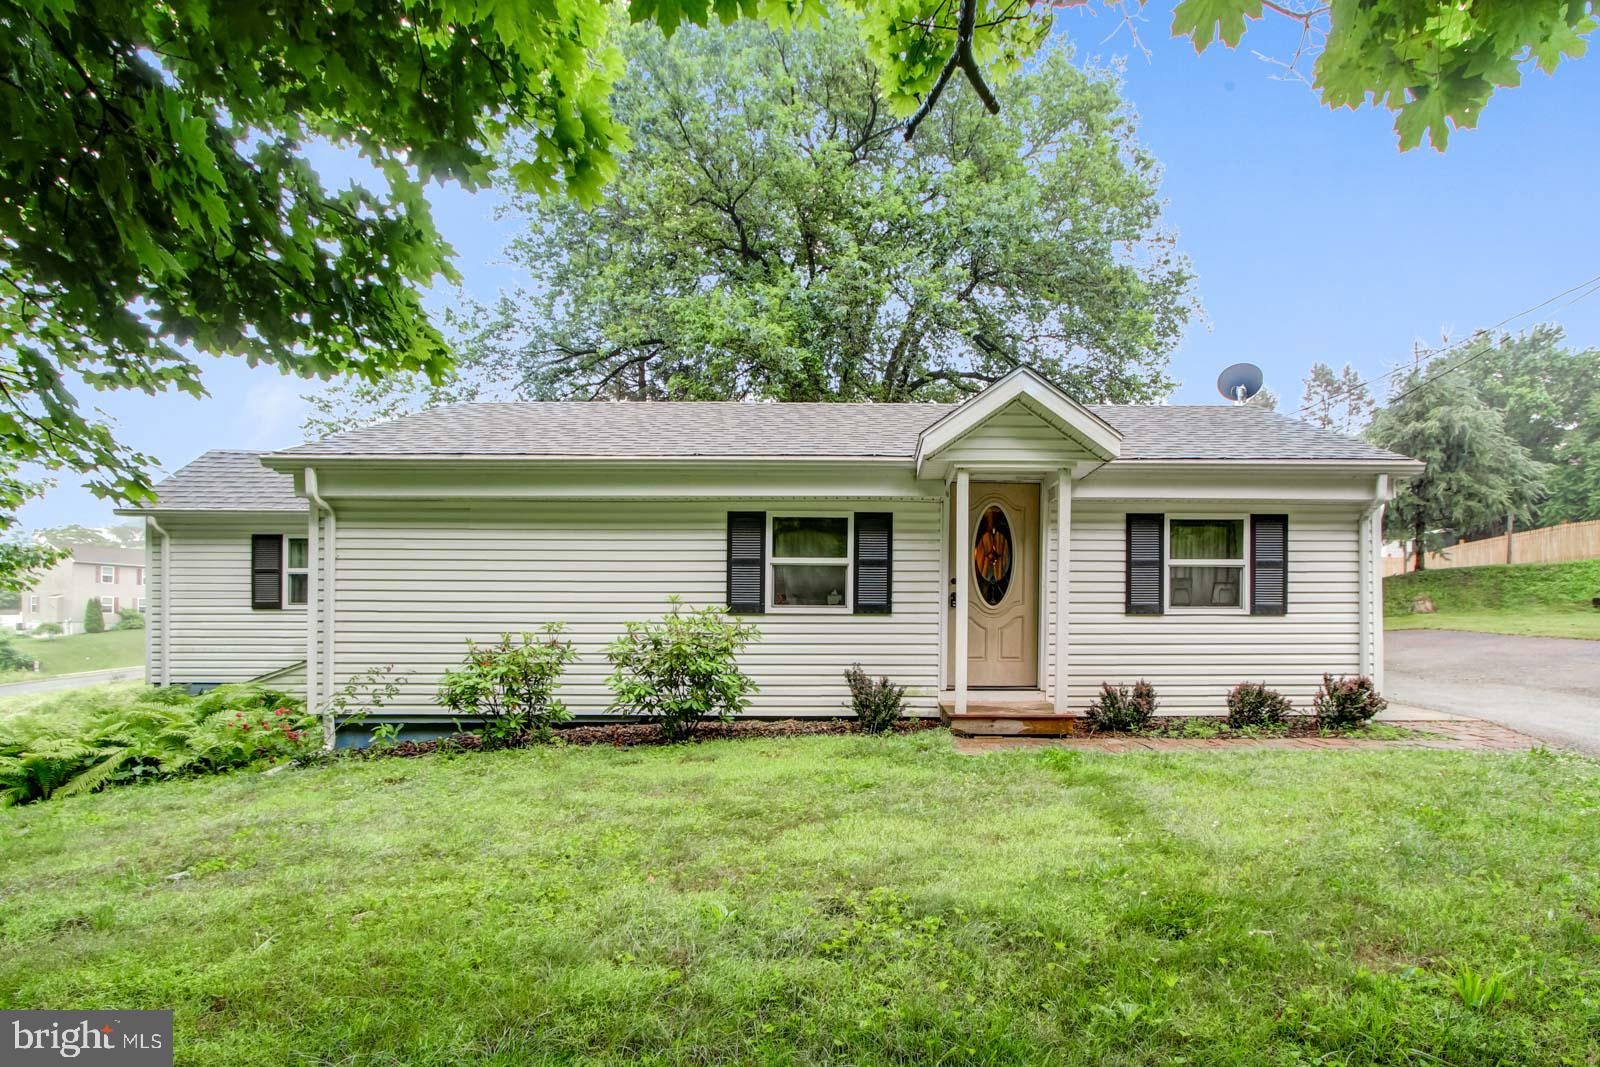 120 VALLEY ROAD, WINDSOR, PA 17366